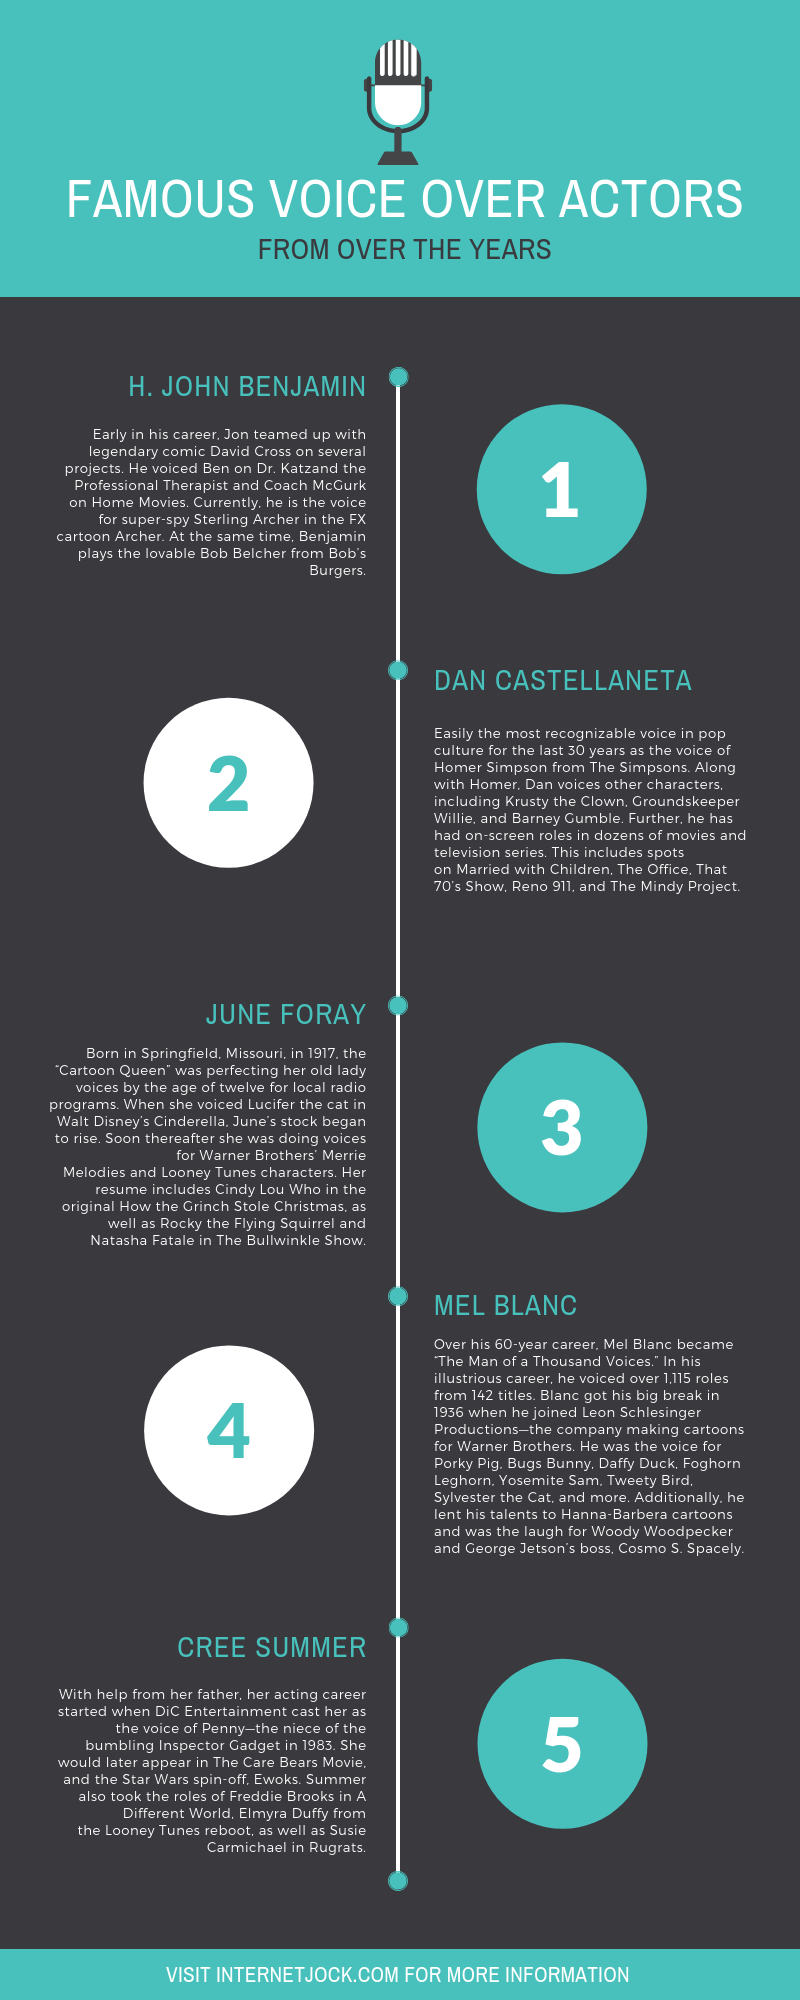 Famous Voice Over Actors from Over the Years infographic